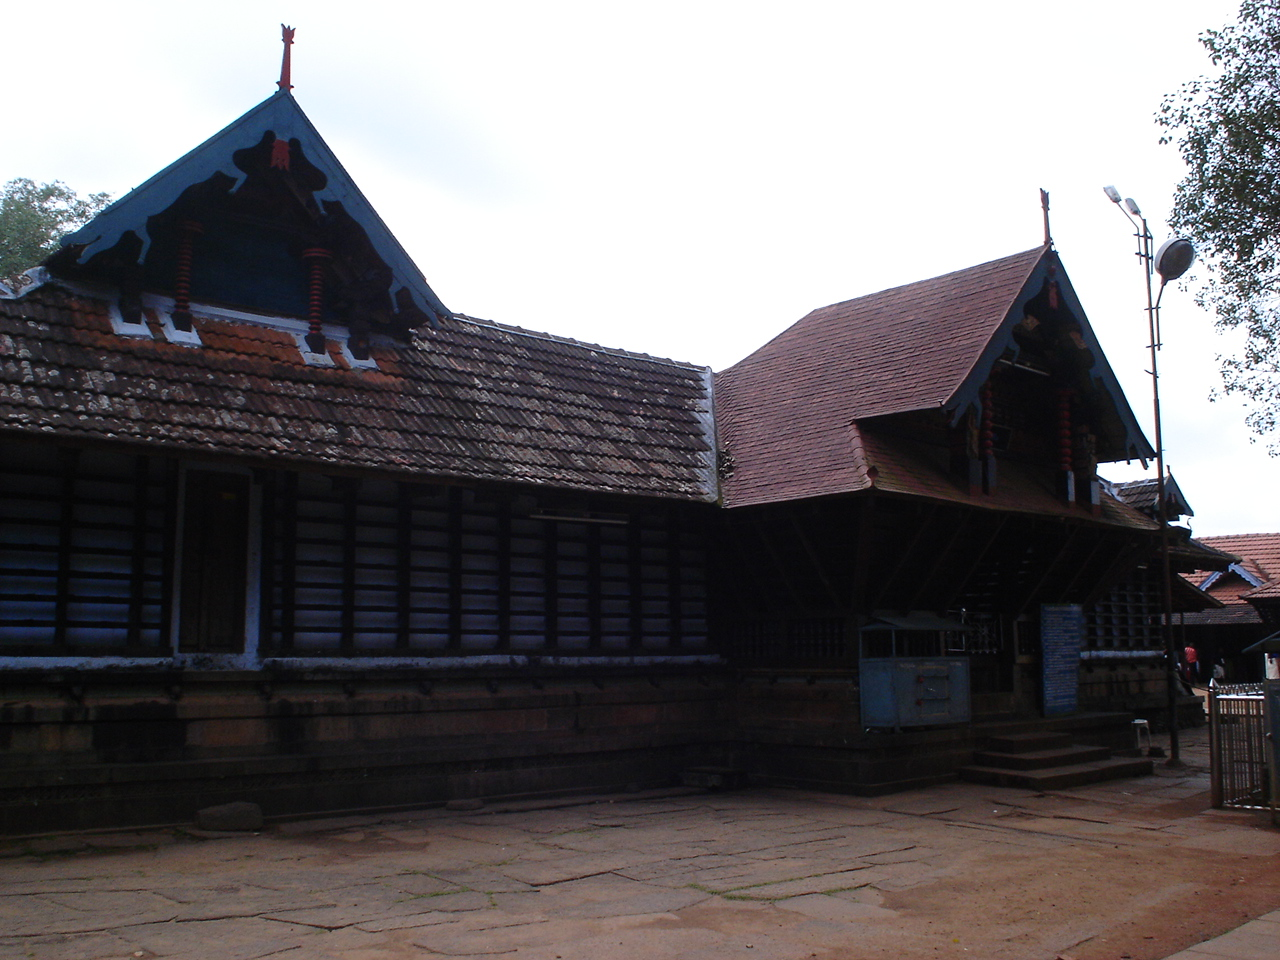 Thirumanthamkunnu Temple, Kerala, India